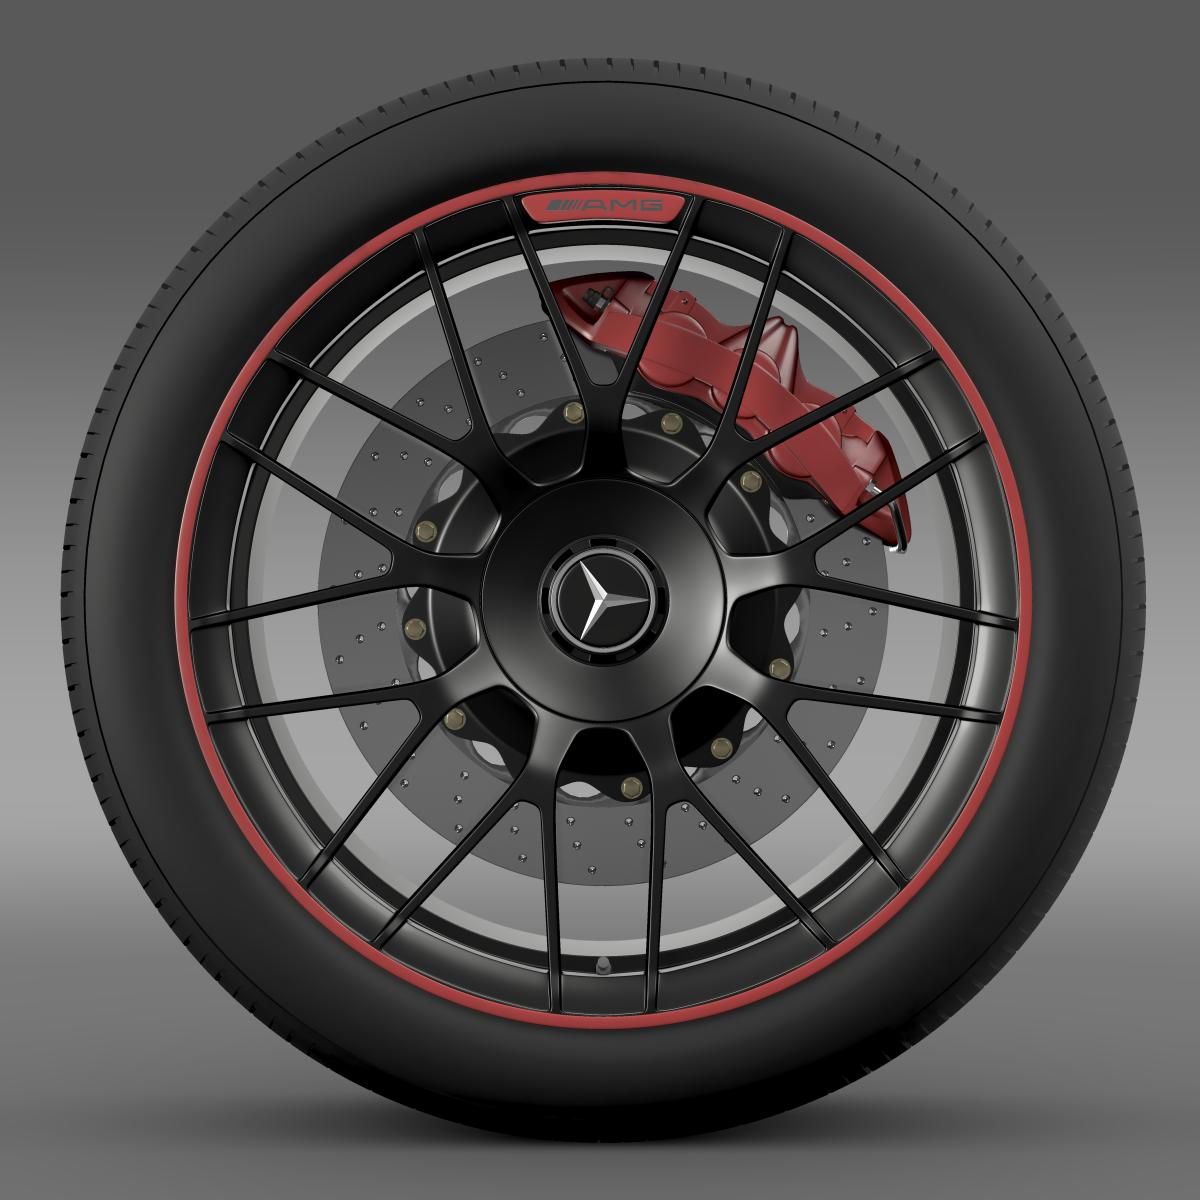 mercedes amg c 63 s edition wheel 3d model 3ds max fbx c4d lwo ma mb hrc xsi obj 210743